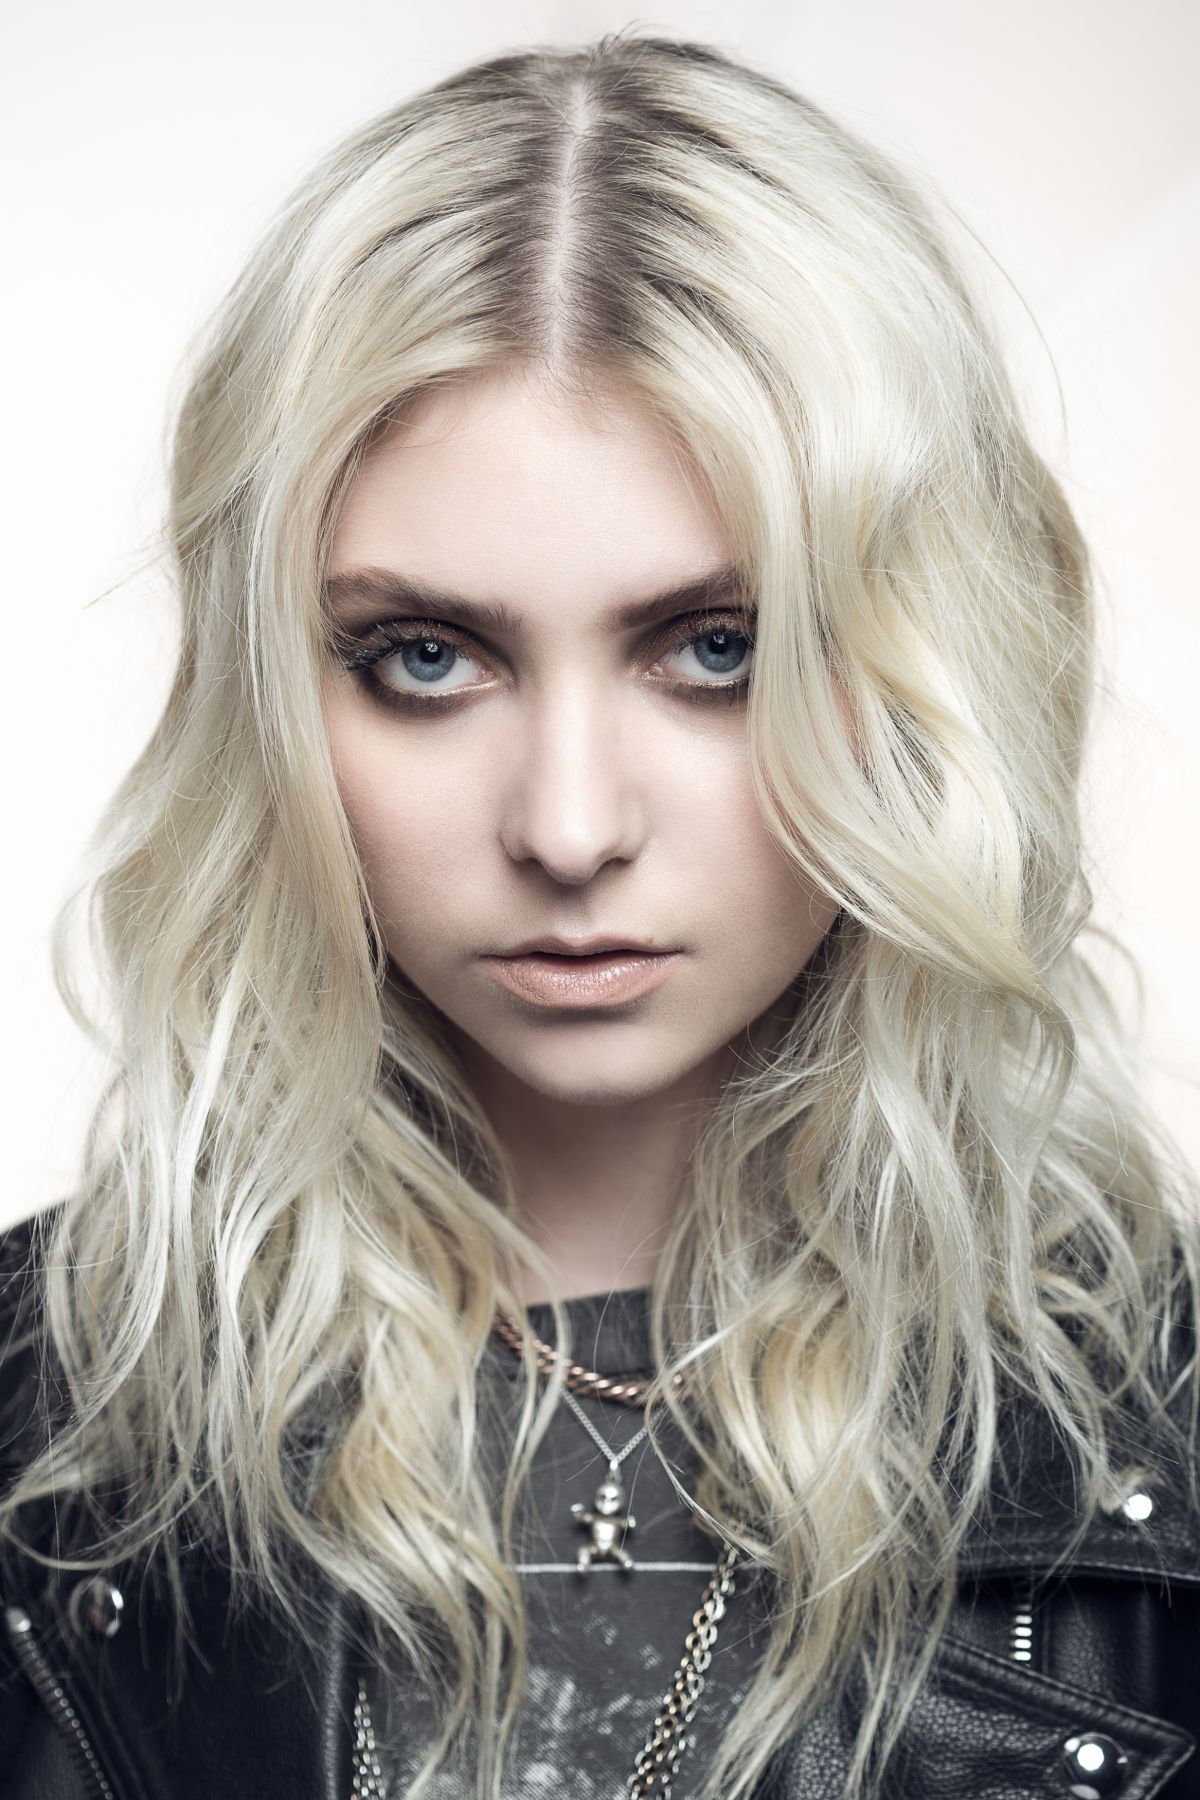 TAYLOR MOMSEN for The ... Taylor Momsen